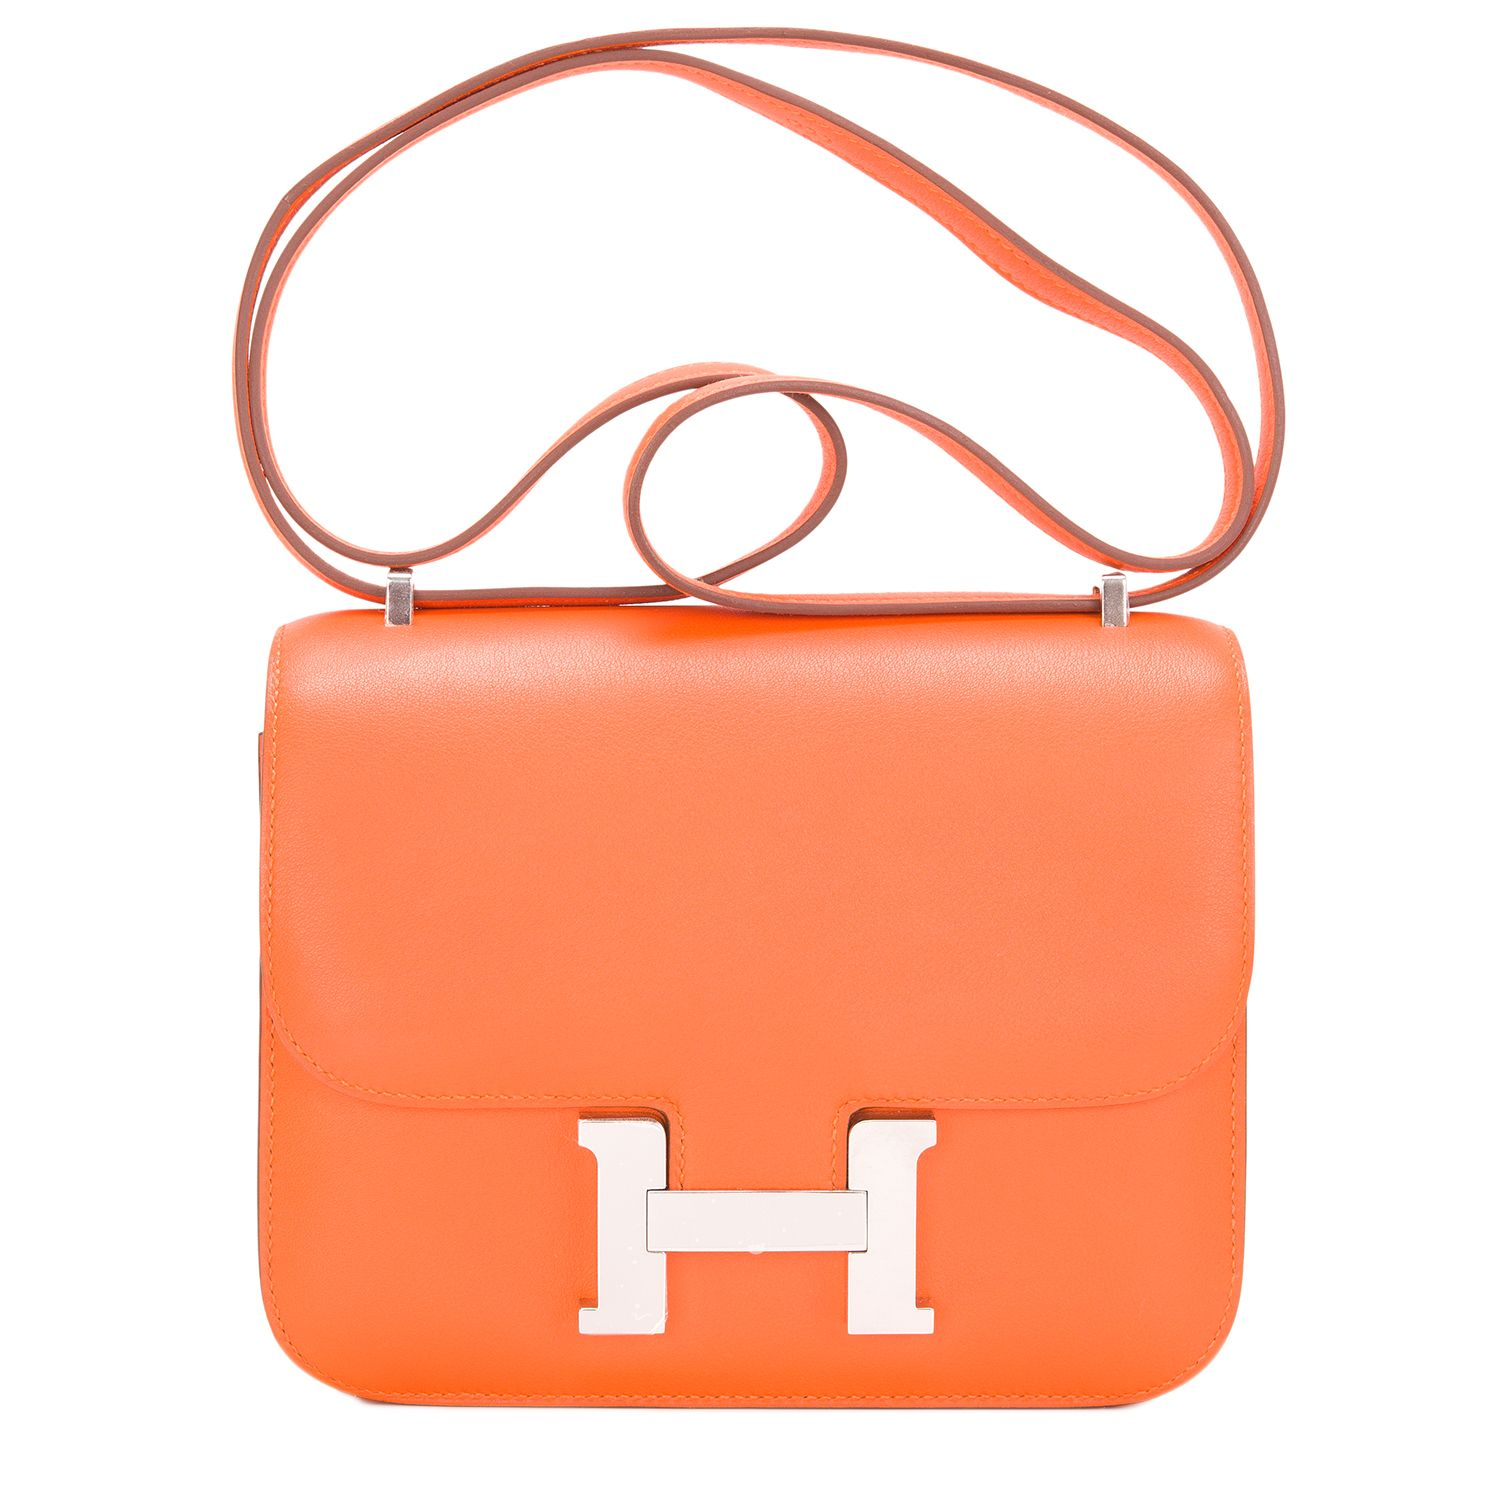 c9c7e87802c4 Hermes Constance Orange H Swift Mini 18cm  hermes